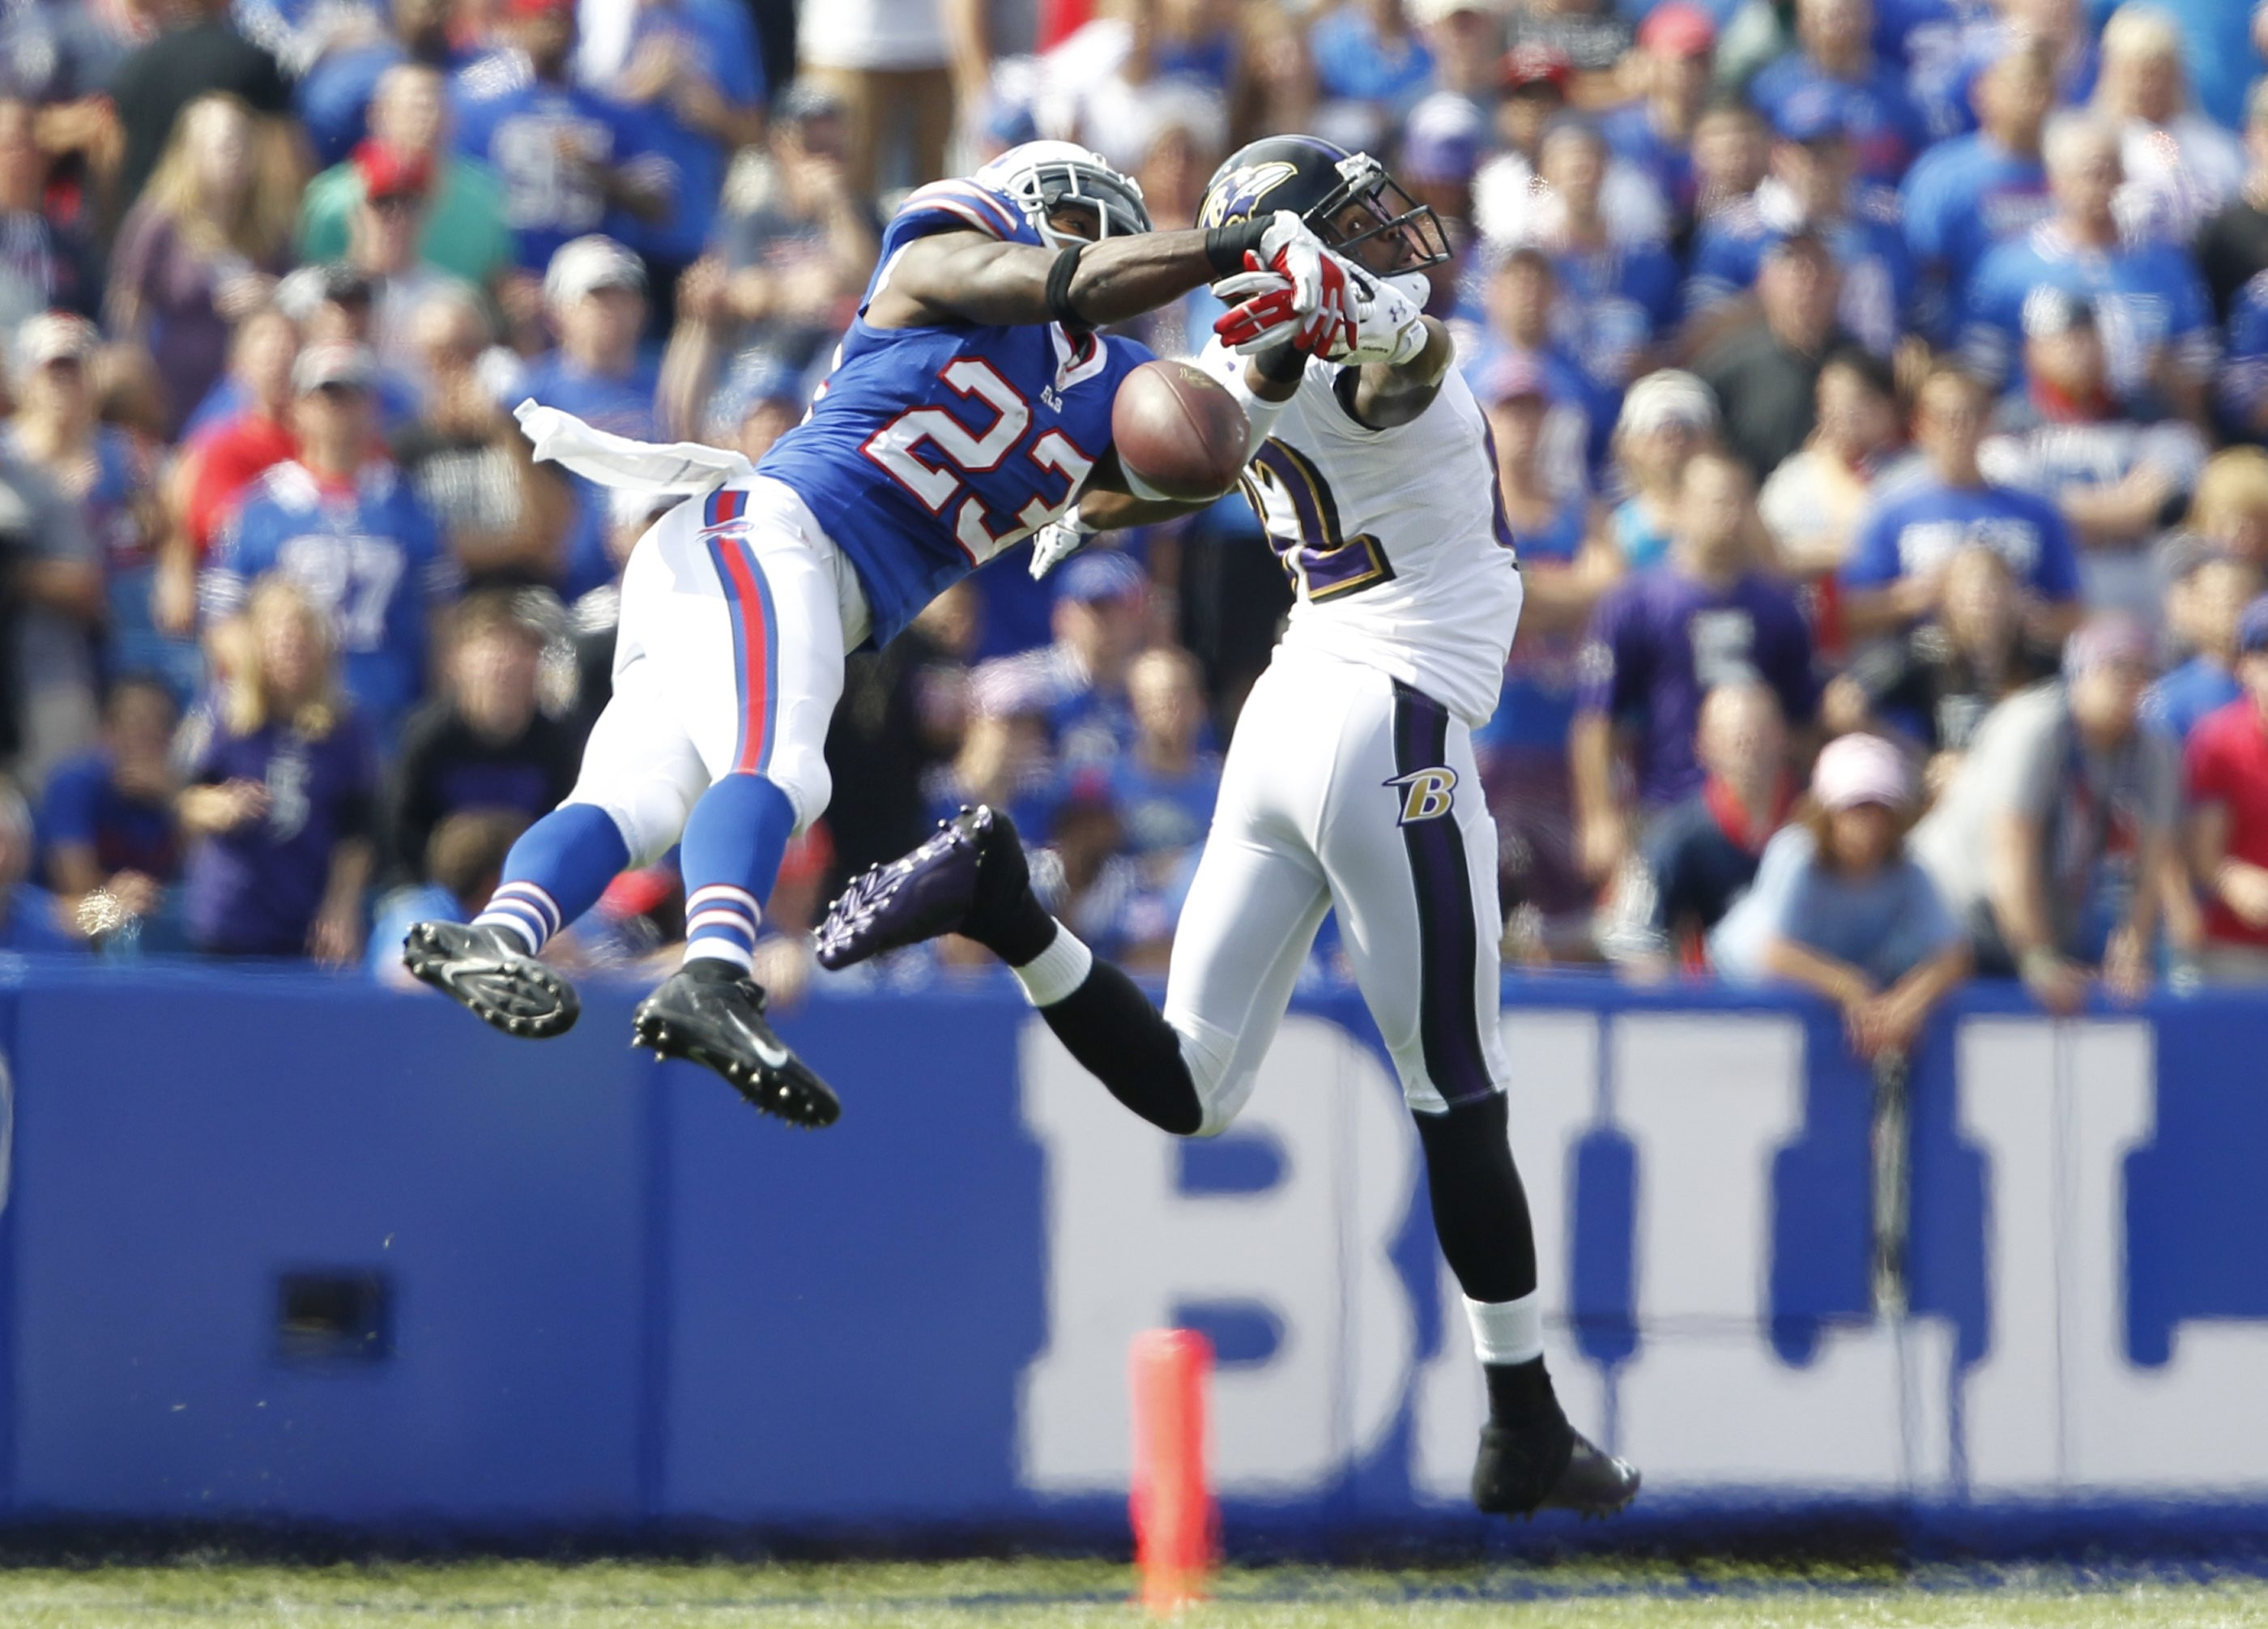 Aaron Williams breaks up a pass intended for the Ravens' Torrey Smith during Sunday's game at Ralph Wilson Stadium.